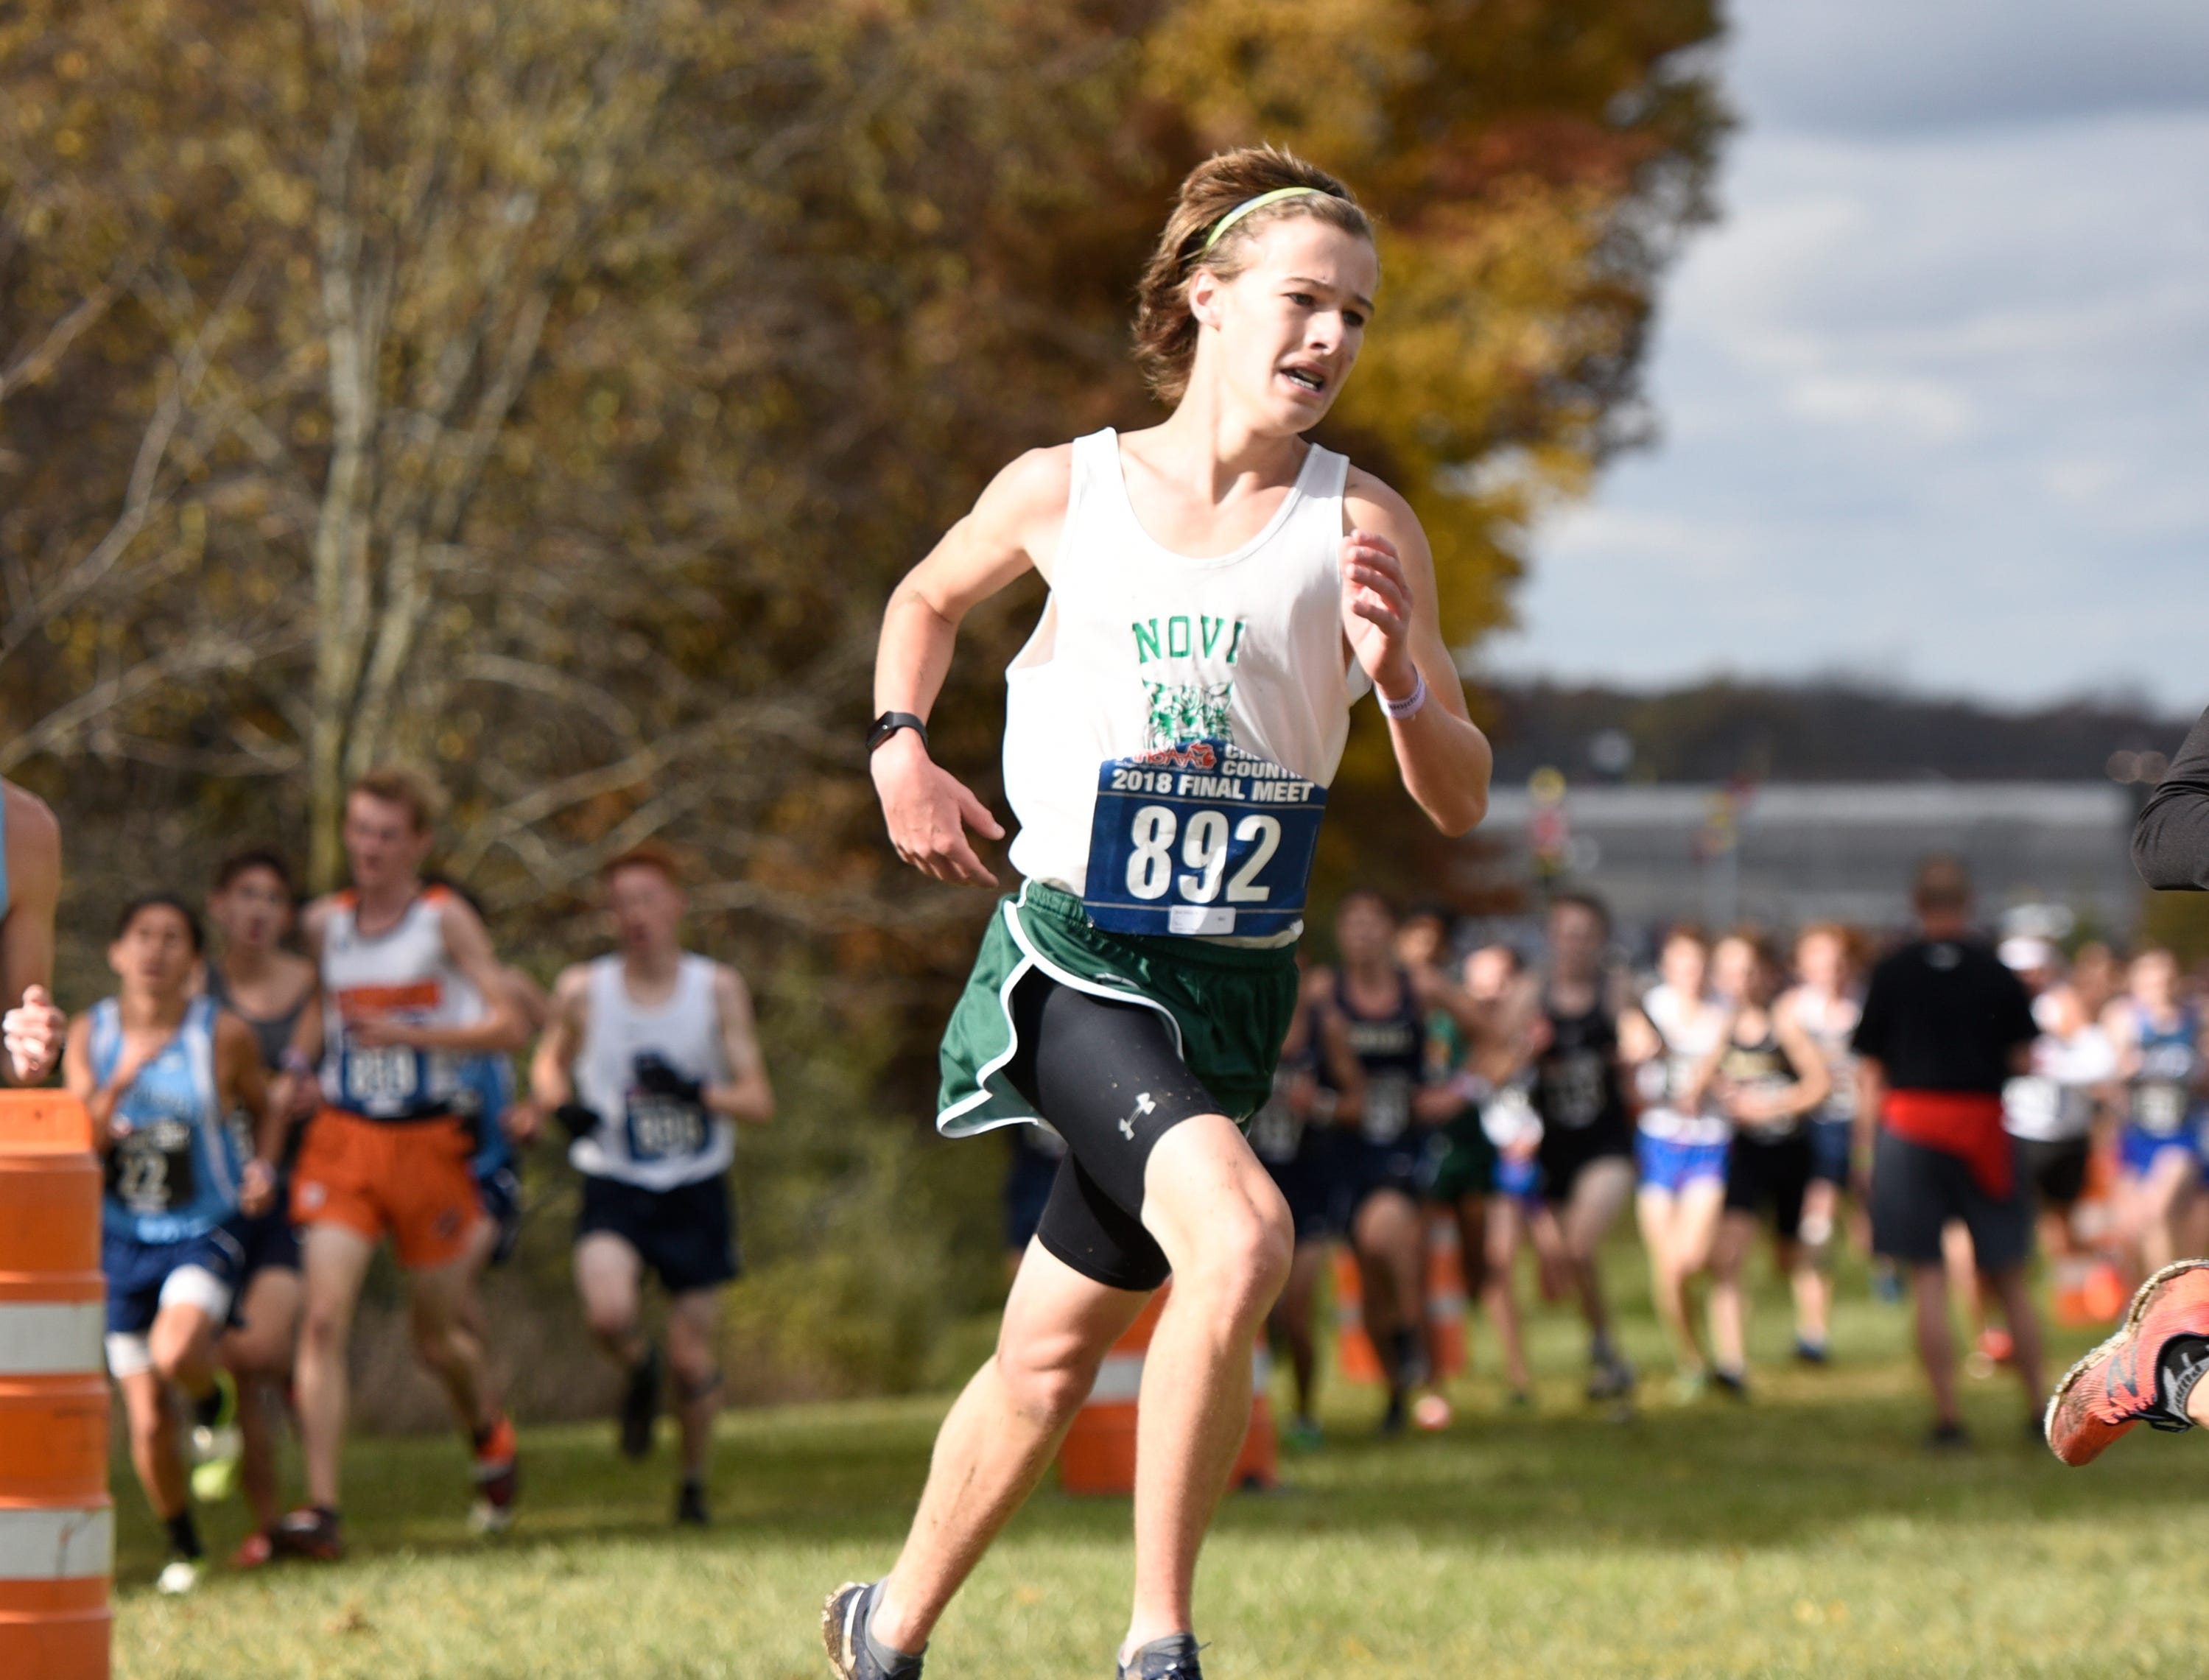 Novi's Matt Whyte (892) during the Division 1 2018 cross country finals at Michigan International Speedway.